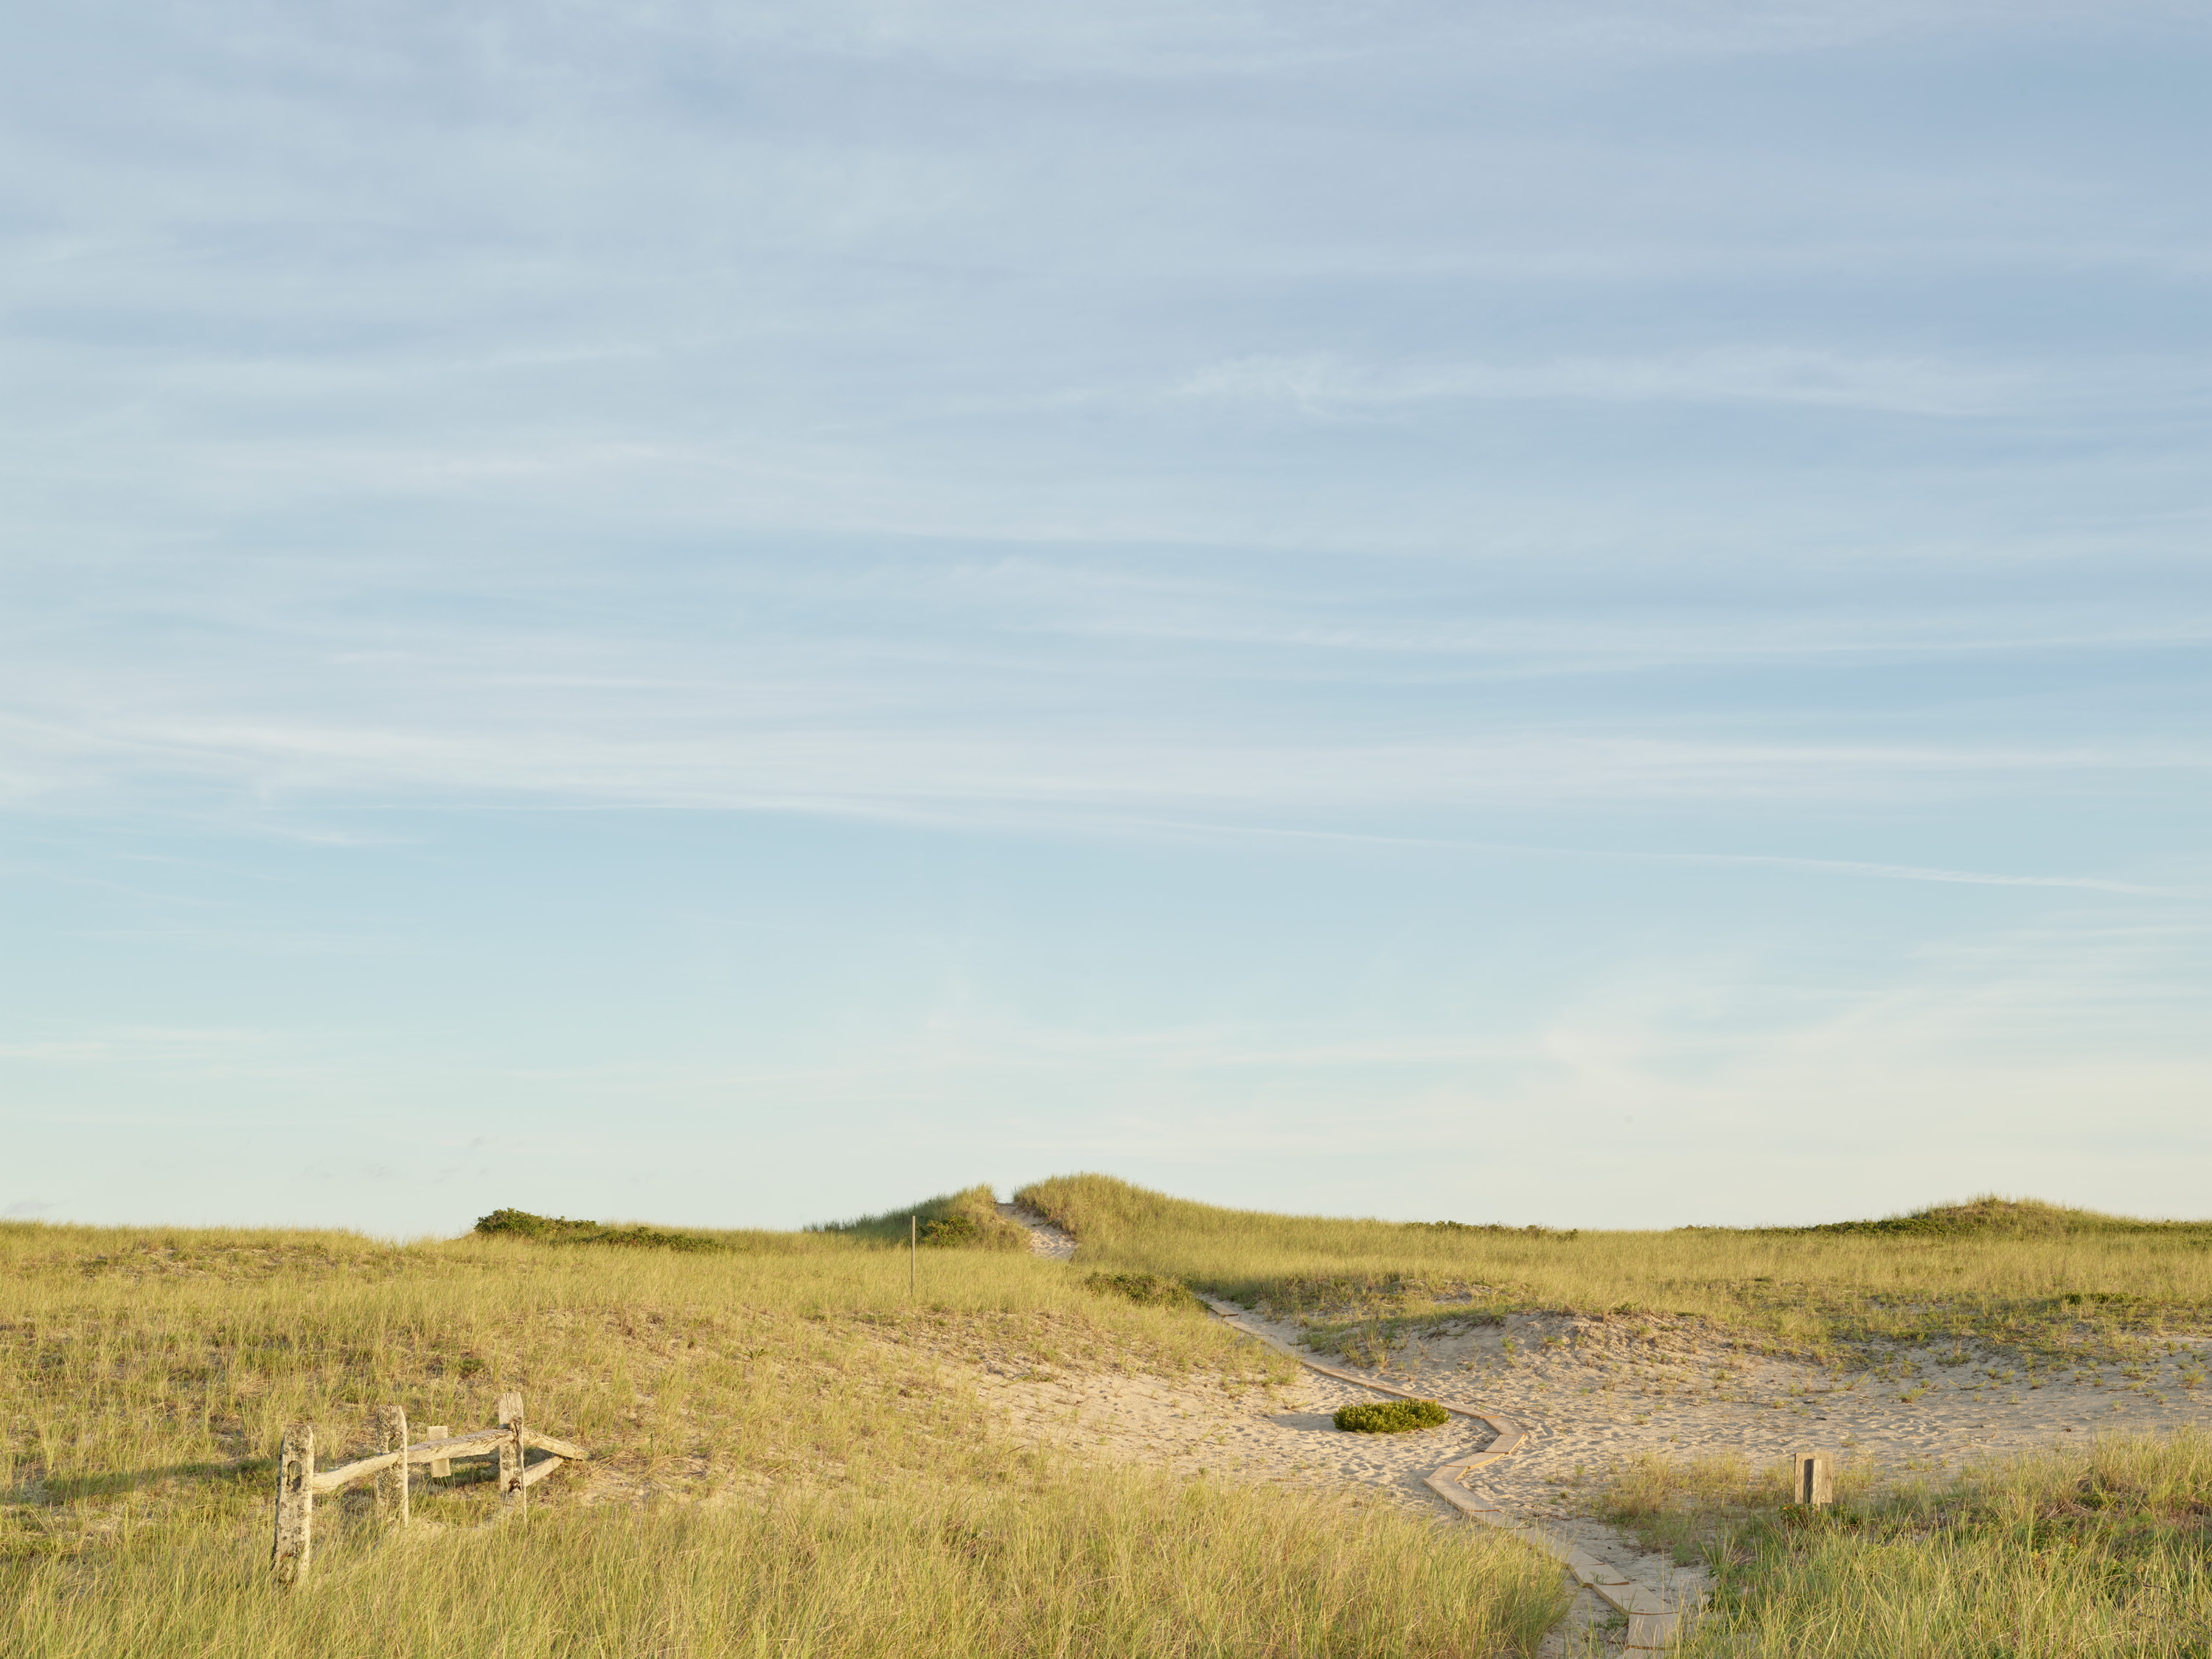 Beach Bound #5134  |  Nantucket  |  Michael Gaillard